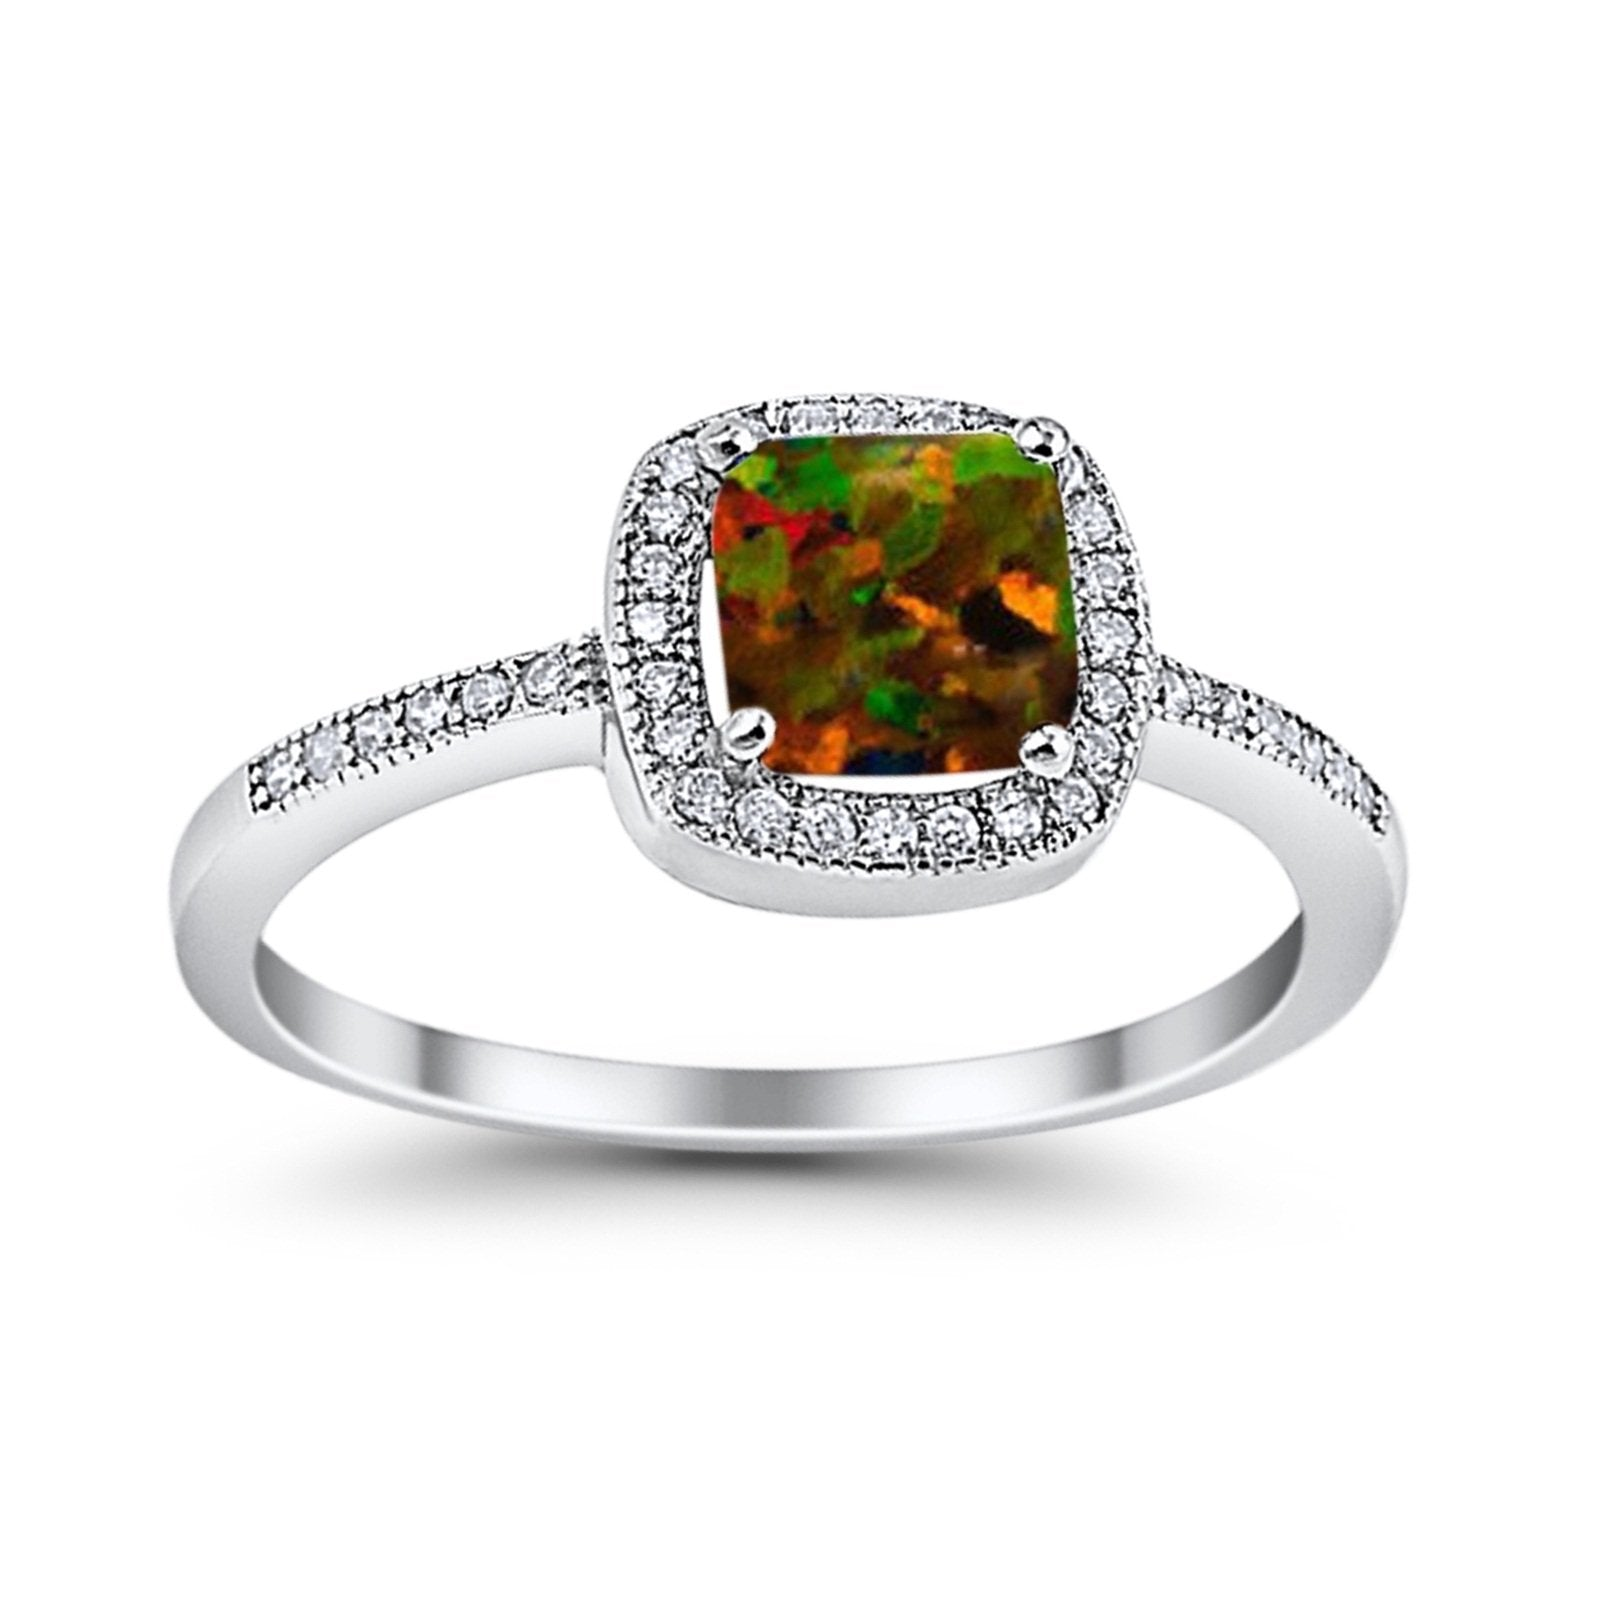 Halo Accent Engagement Ring Simulated Cubic Zirconia 925 Sterling Silver